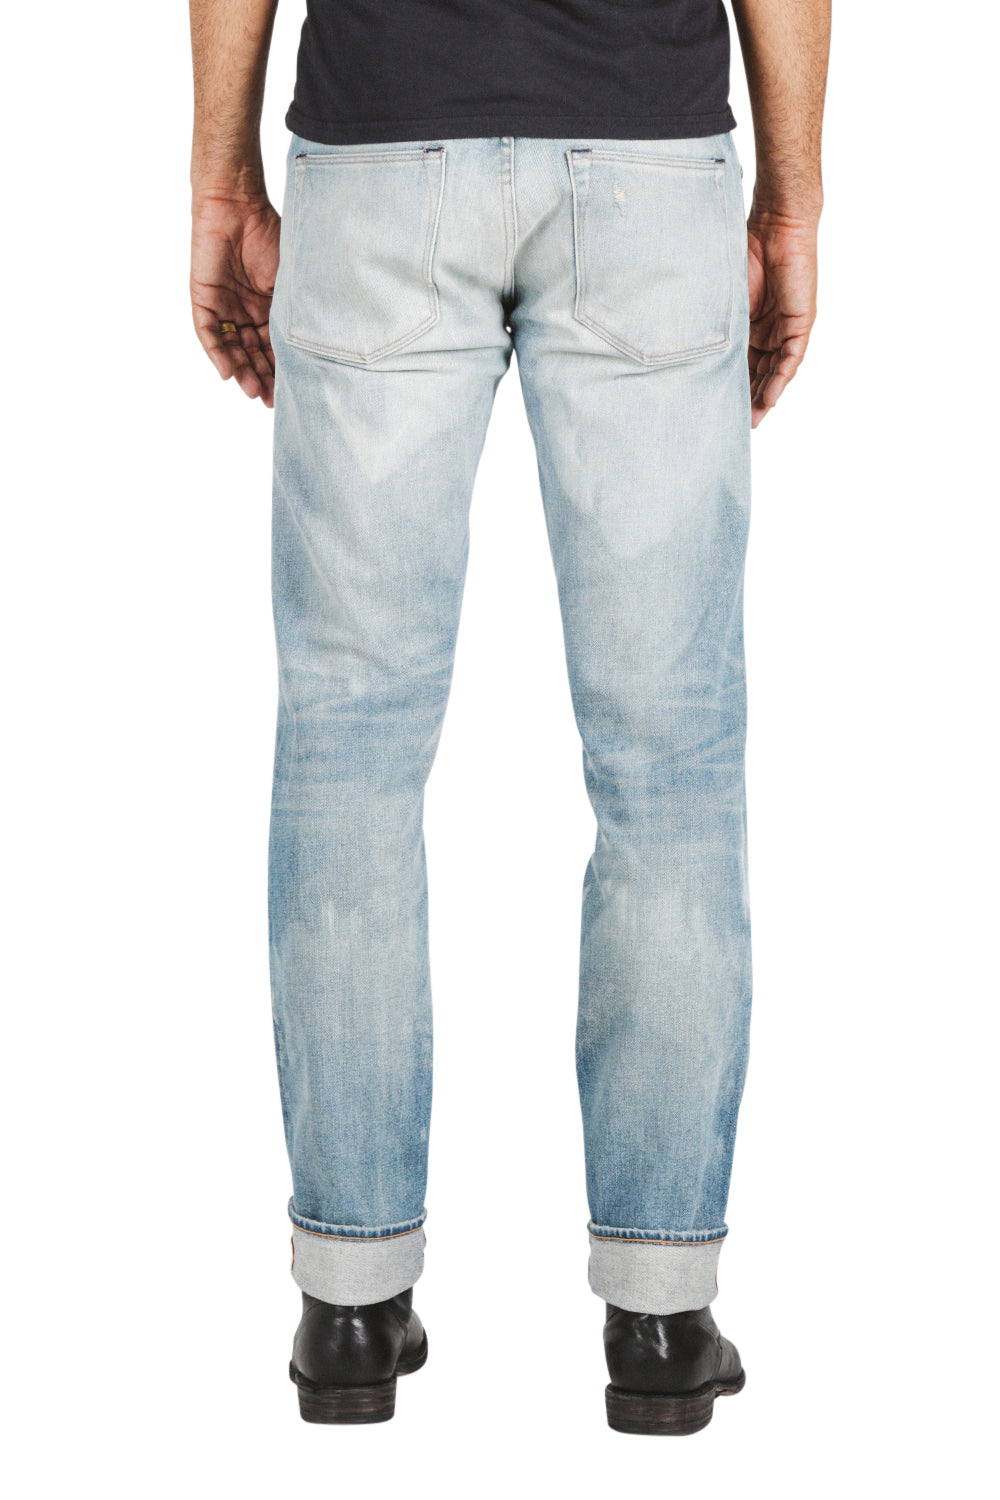 """The Pen"" Slim 14oz - Cobain 4-Way Stretch Selvedge Jeans"